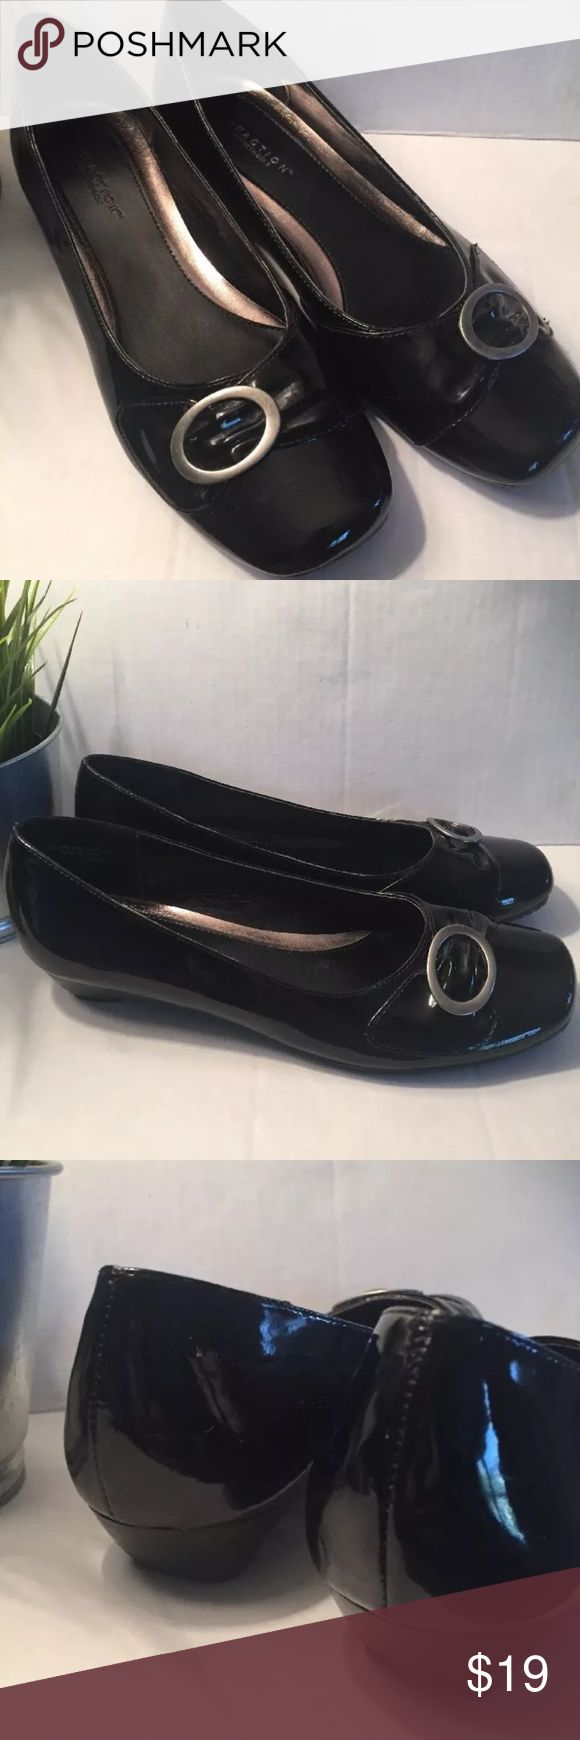 Kenneth Cole  Reaction Ballet Flats Kenneth Cole Reaction  Shiny, patent leather flats w/buckle at toe. Rounded,Square Toe Size 7.5M  Pretty good condition, gentle to moderate signs of wear on soles.   Thank you for your interest! Kenneth Cole Reaction Shoes Flats & Loafers